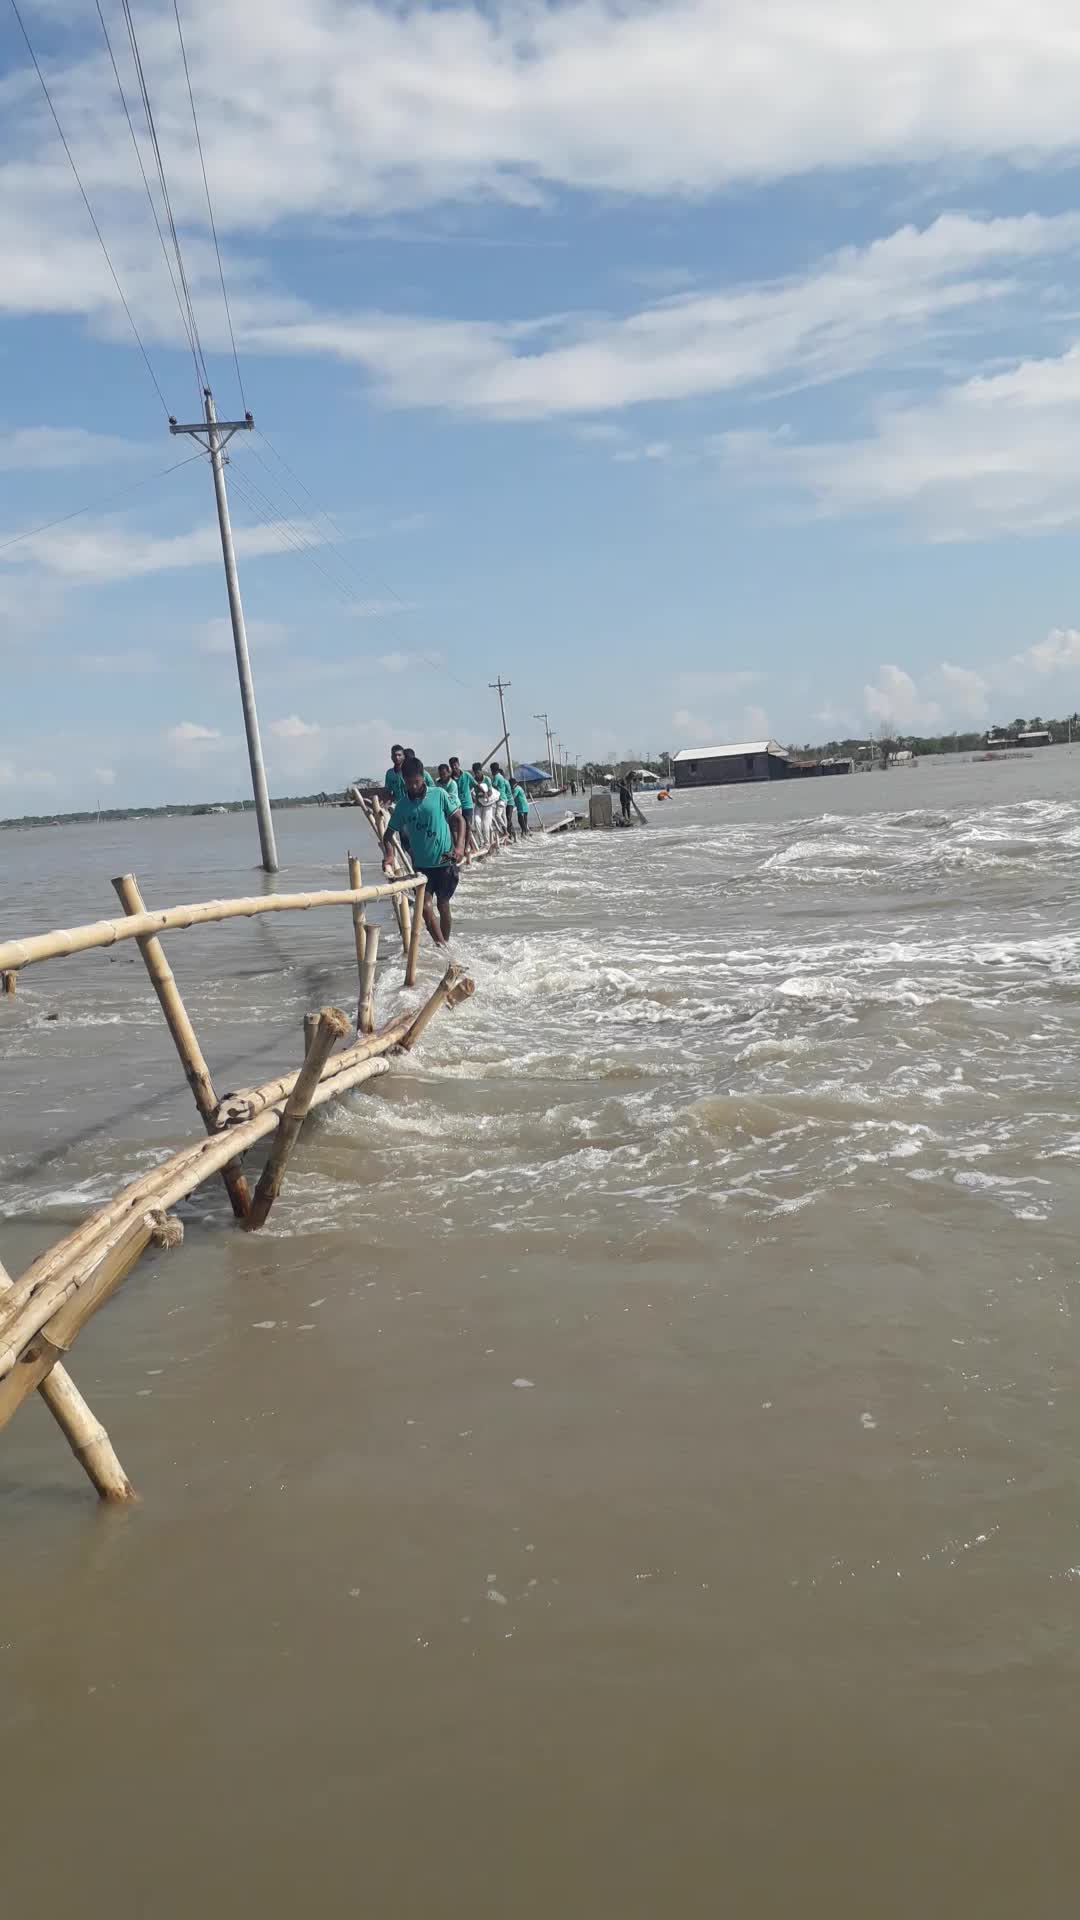 Members of the release are crossing a bamboo bridge over the water at the risk of their lives